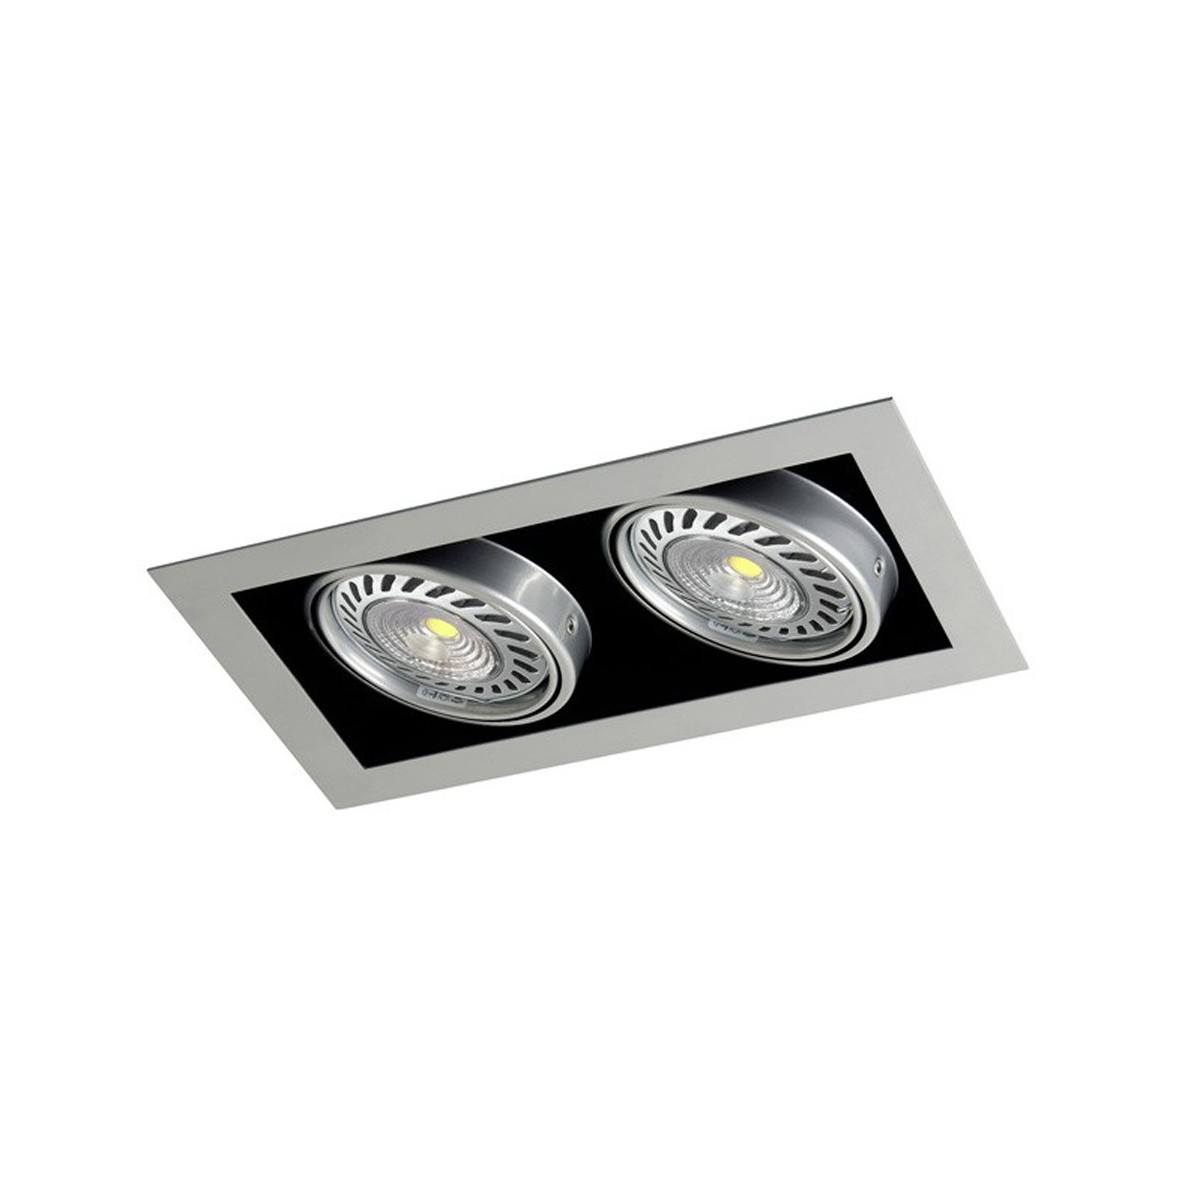 Tecno Double Cardan Downlight